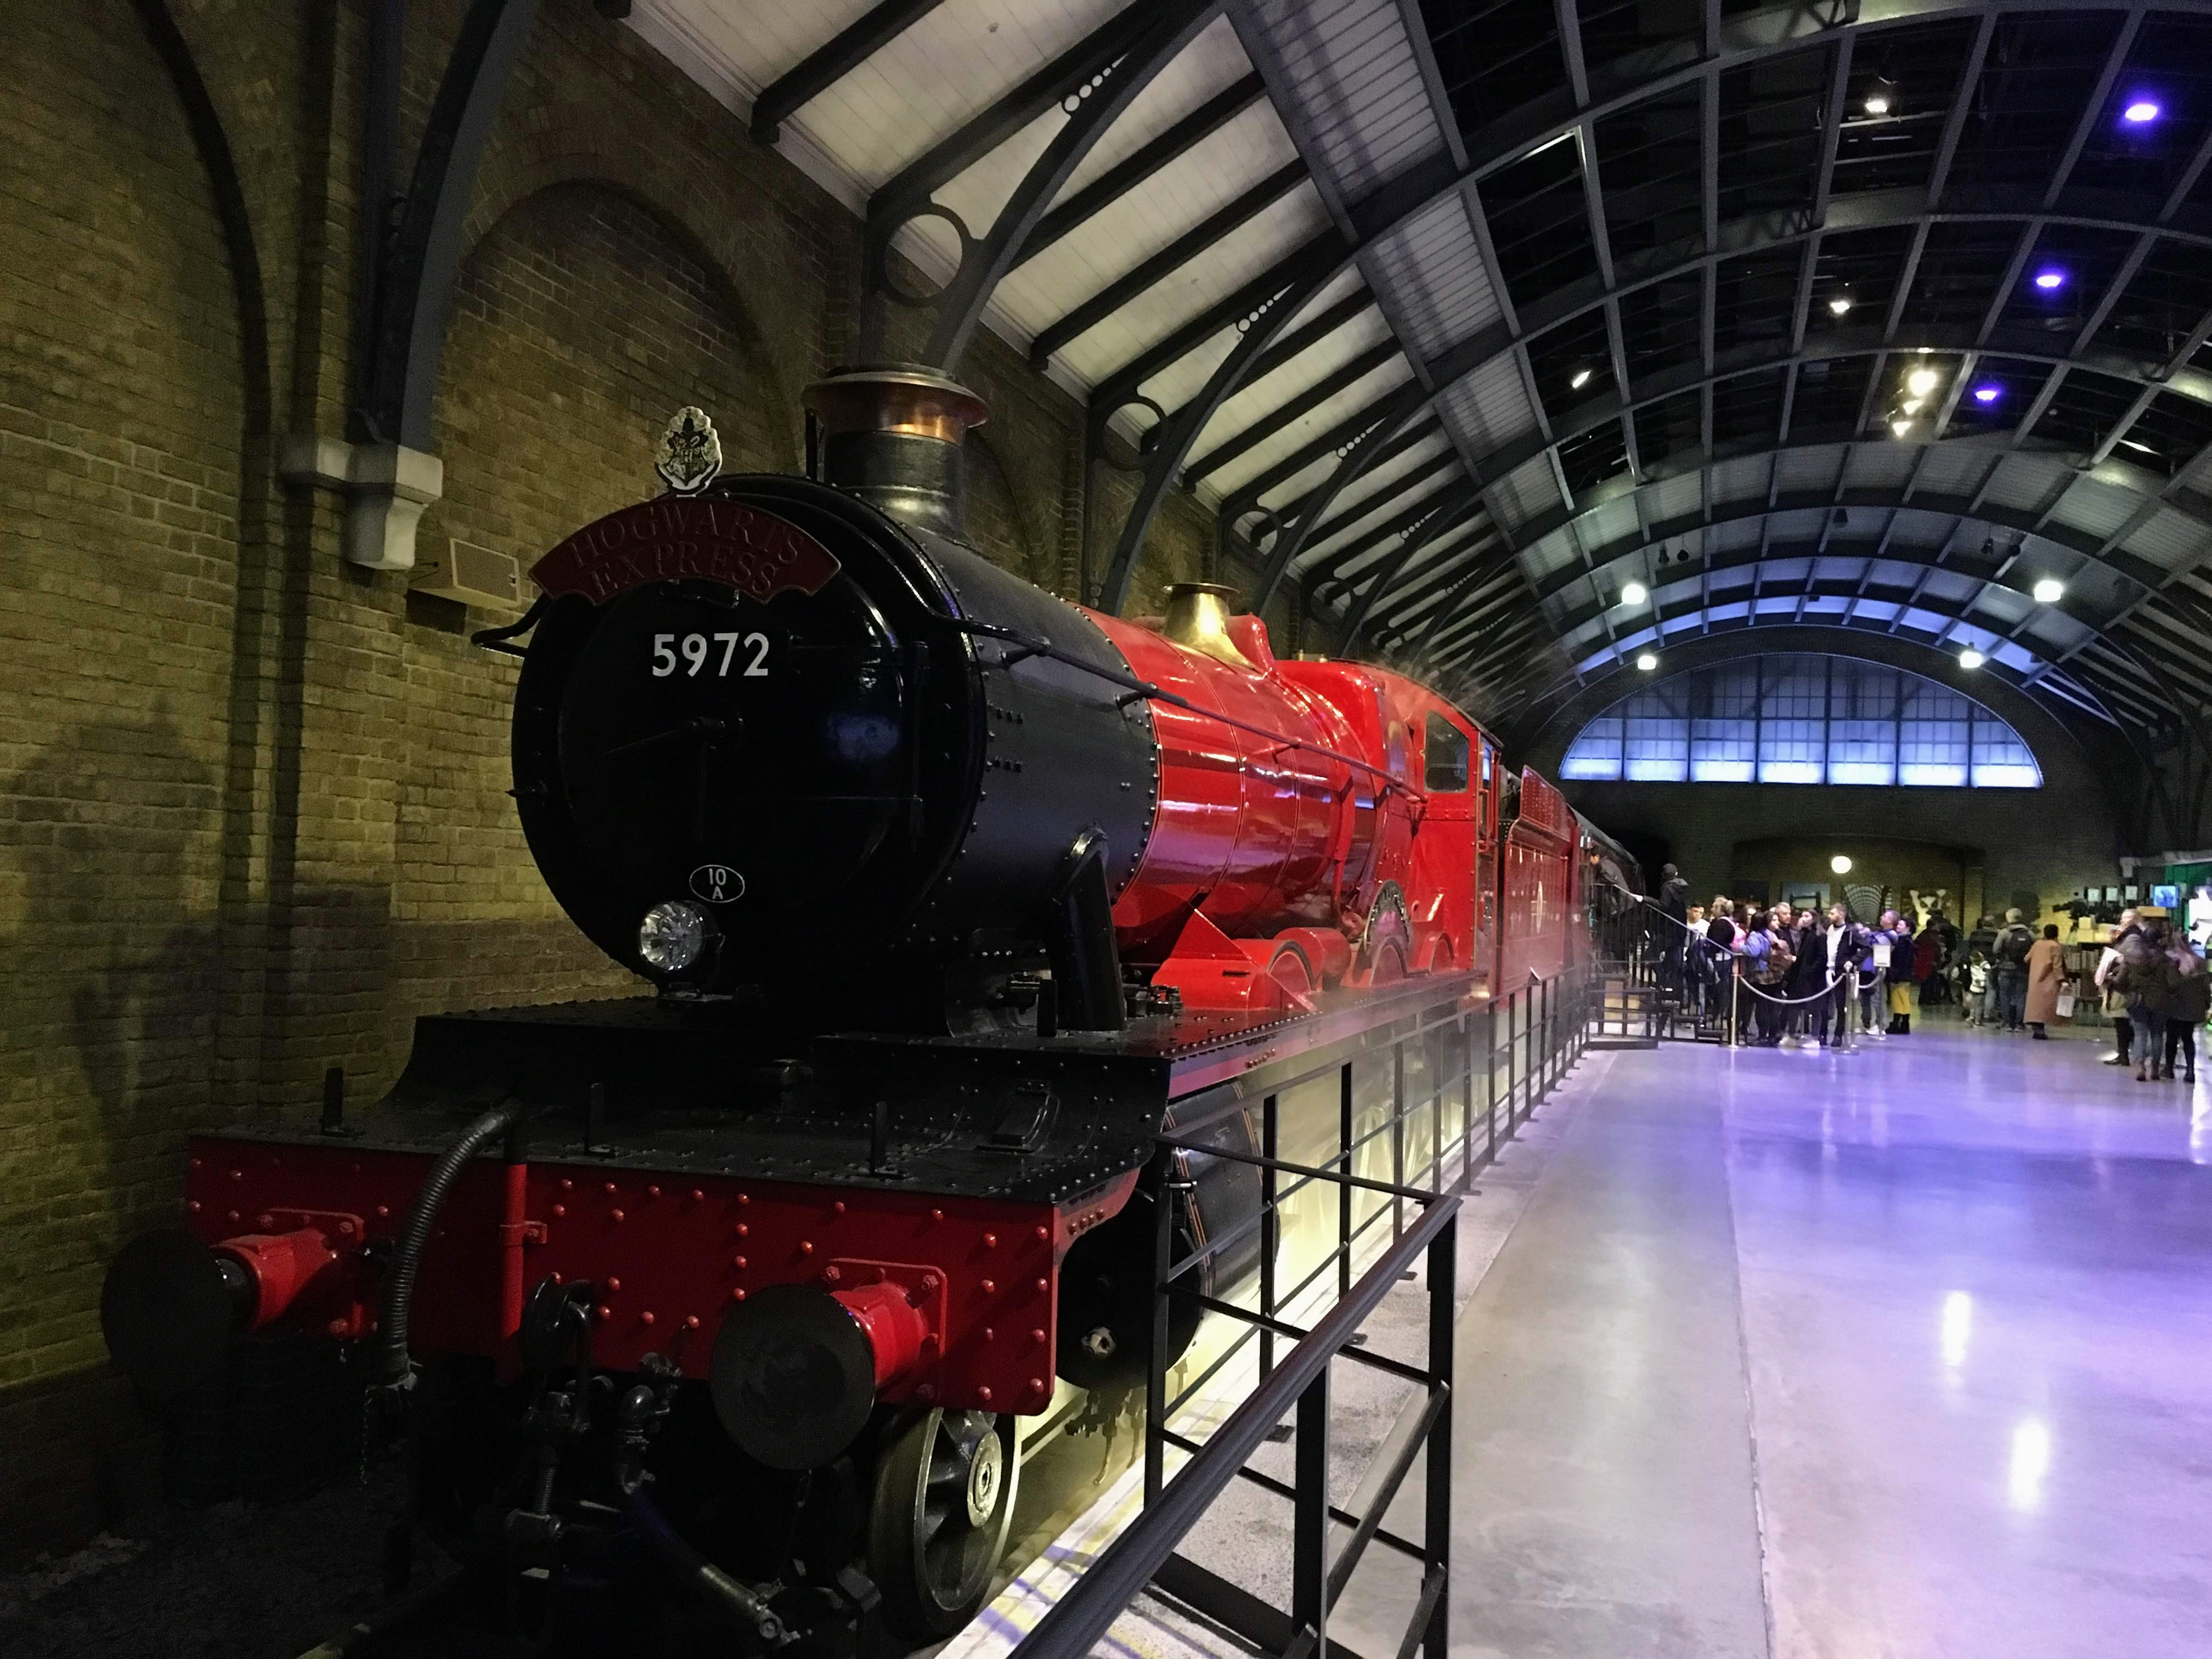 Harry Potter Studios London Hogwarts Express Warner Bros